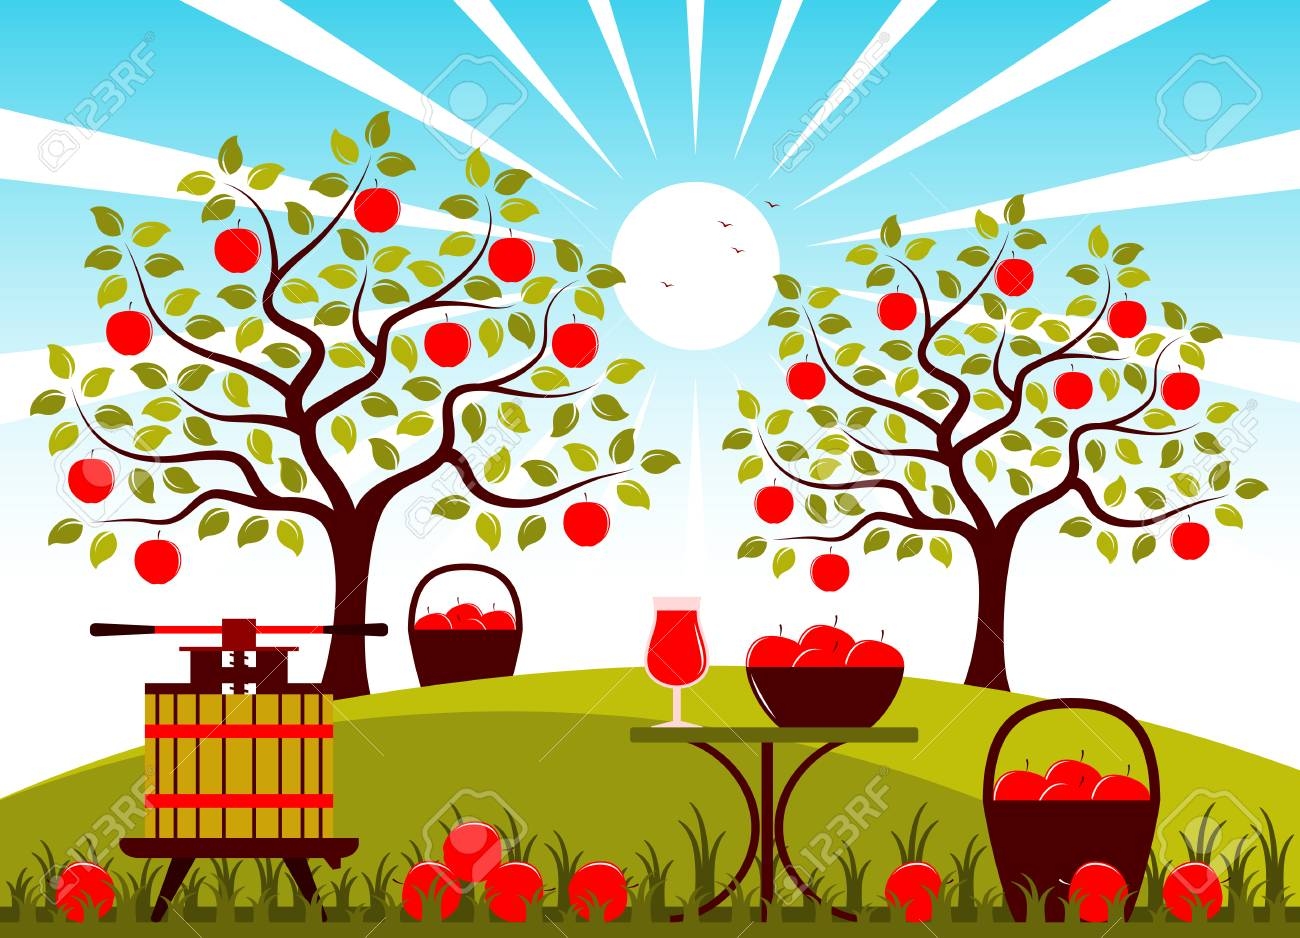 vector fruit press and table with apple drink in apple orchard.